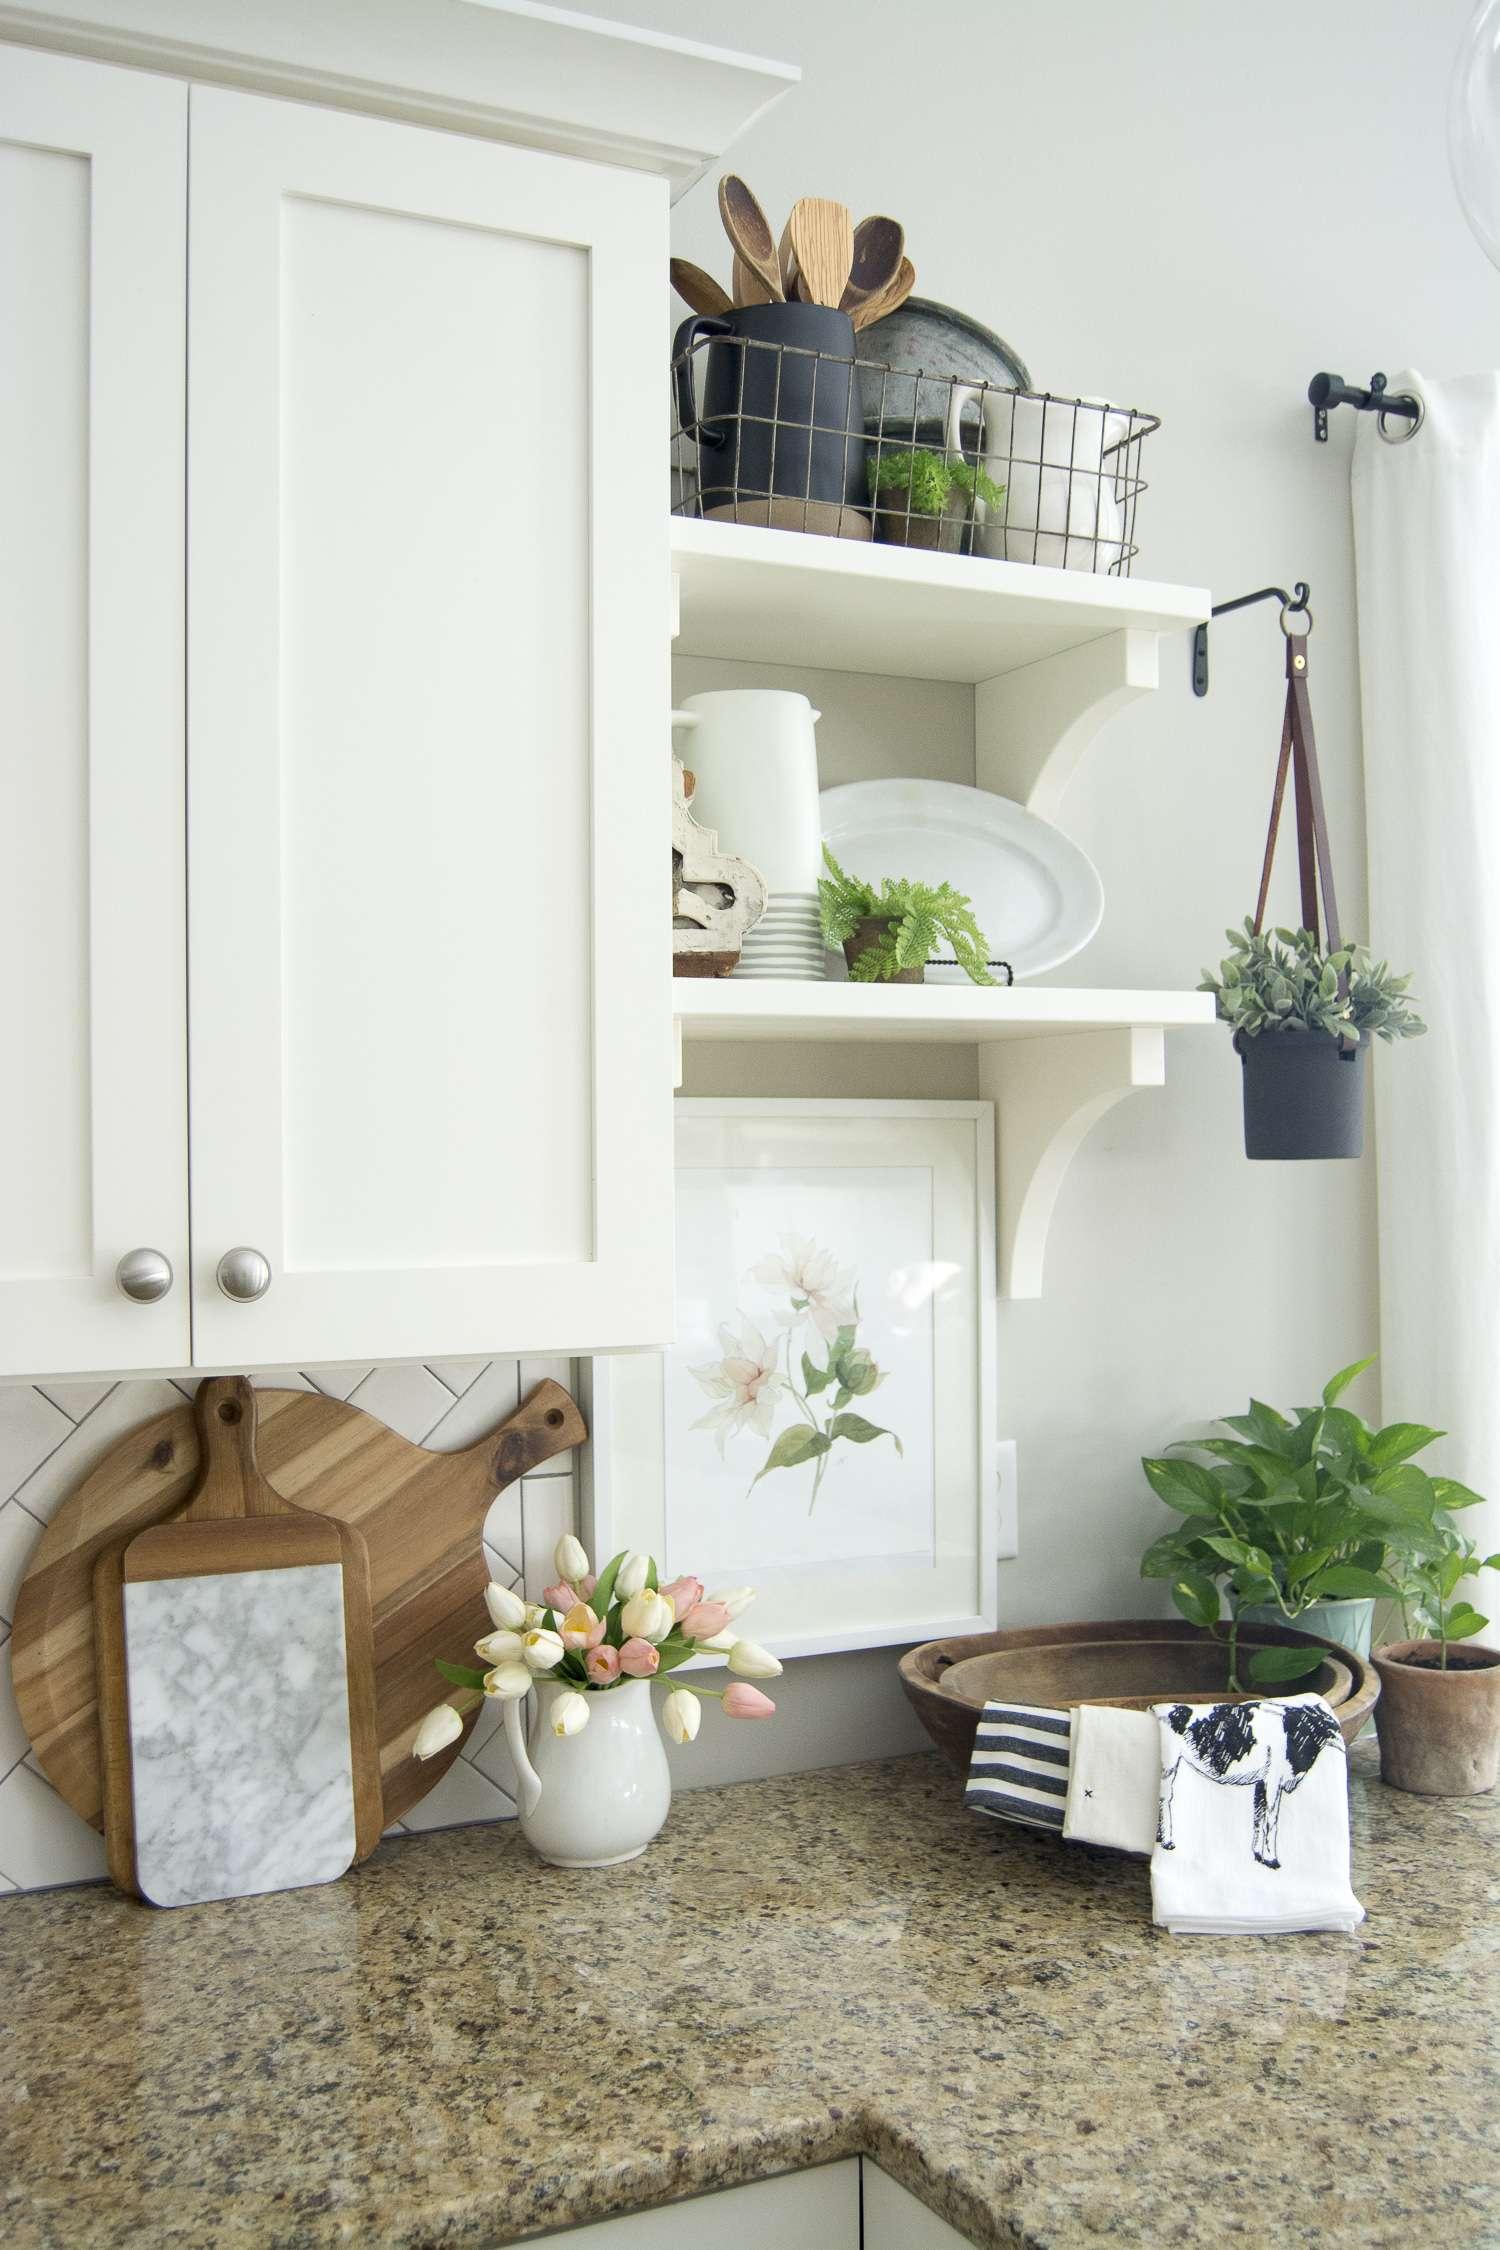 Are you looking for pretty and practical spring kitchen decor ideas? Here are some sure fire ways to beautify your spring kitchen decor and bring some sunshine and life back into your kitchen. This is perfect for the modern farmhouse kitchen lover who enjoys a bit of character in her home.